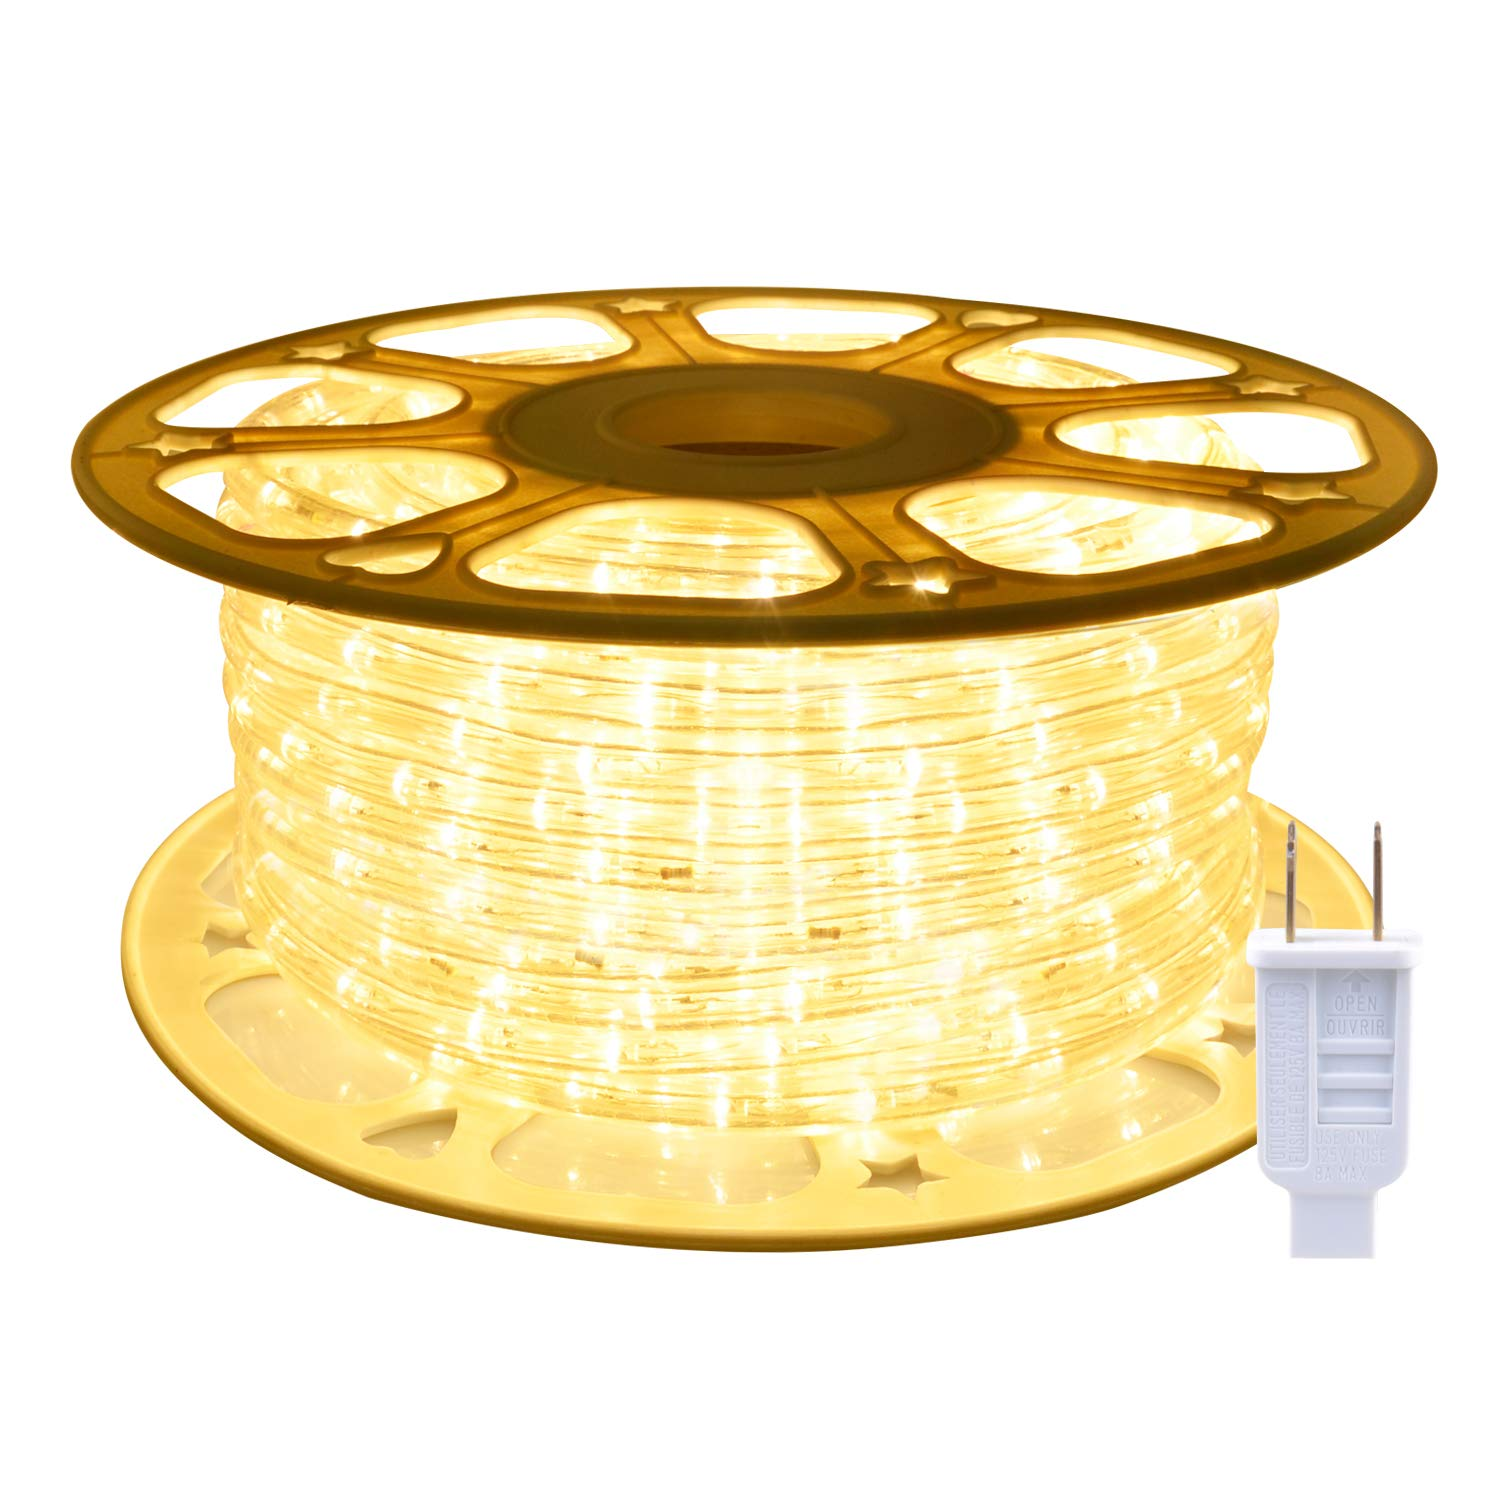 ollrieu 98.4ft/30m LED Rope Lights,Waterproof 720 Led Strip Light Warm White,110V Power Plug Built-in Fuses, Connectable Indoor Outdoor Decoration Lighting for Patio Garden Room Party Cars